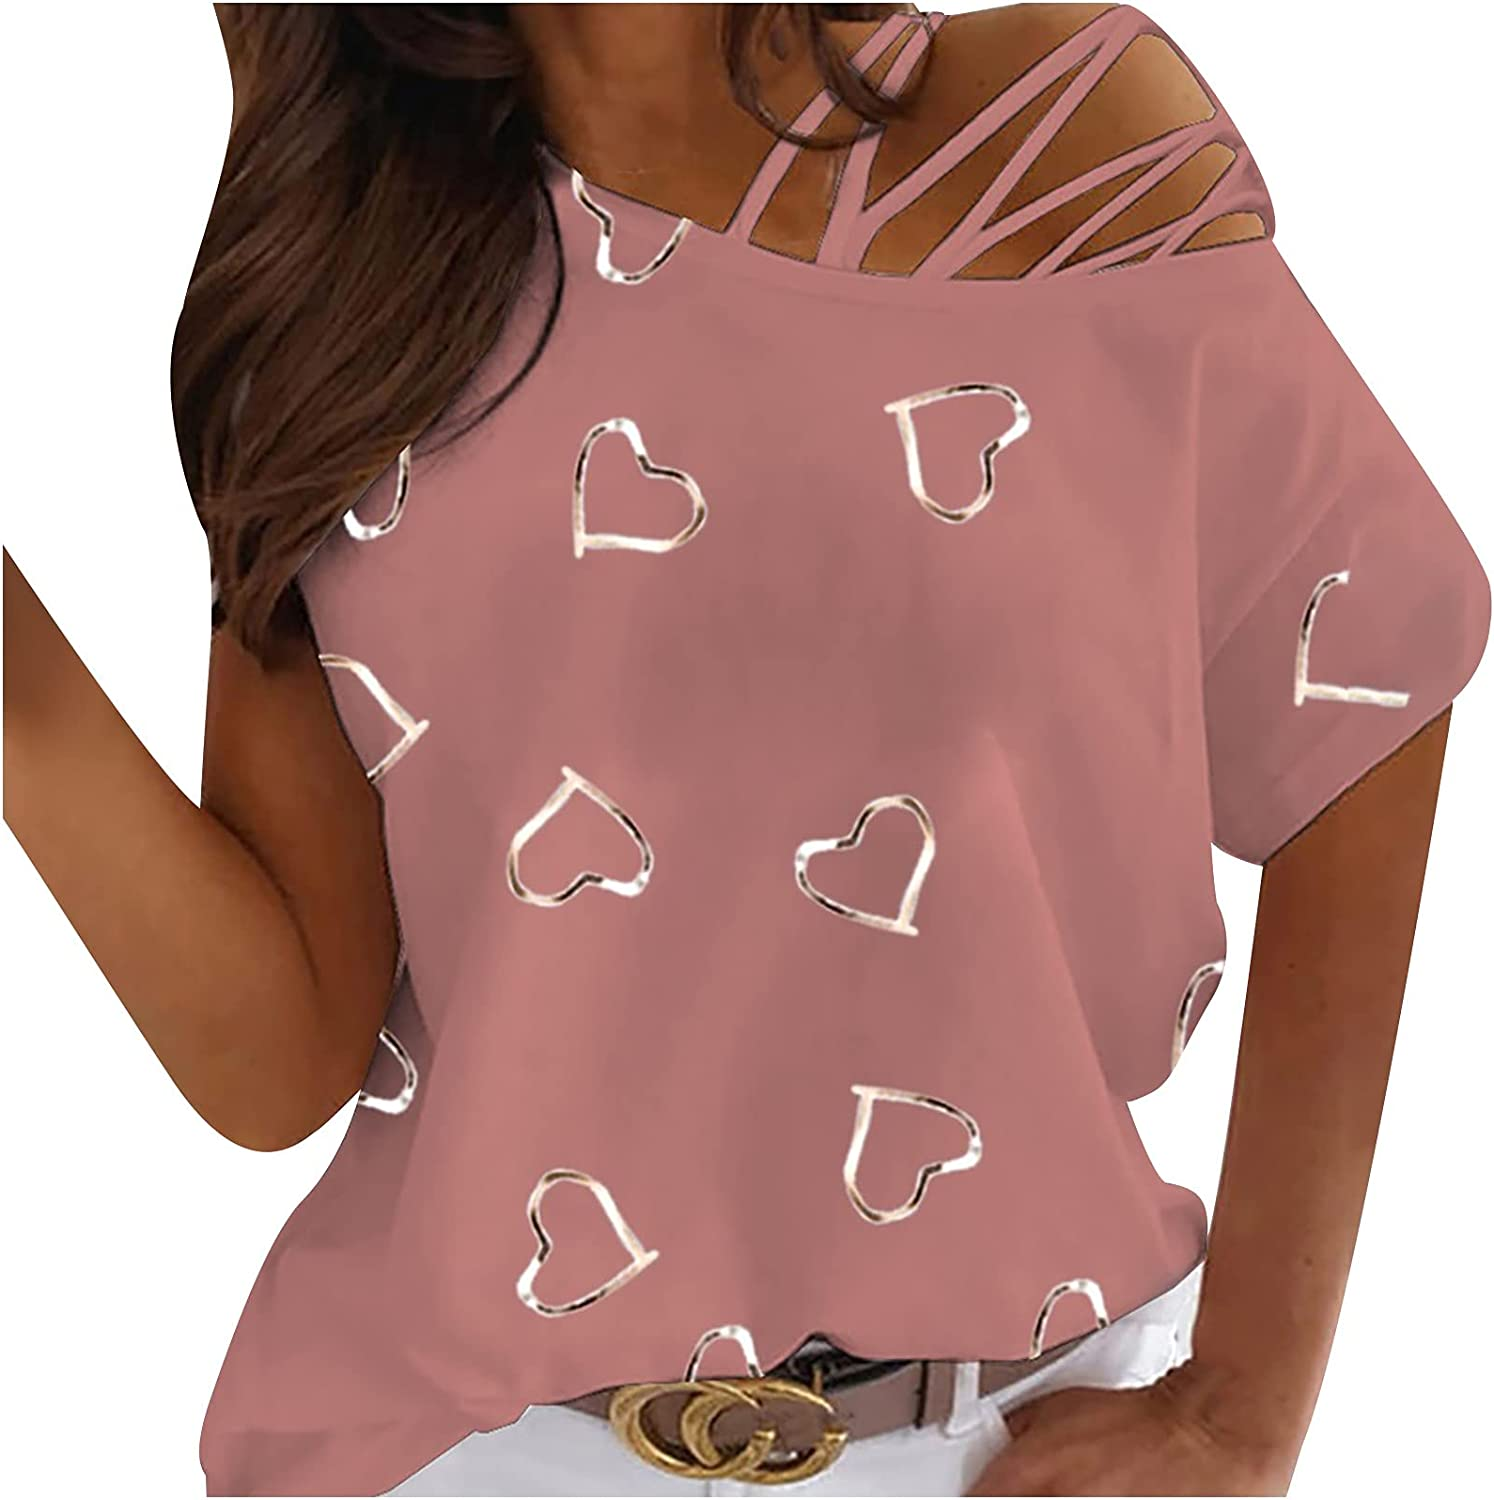 Off Shoulder Short Sleeve T-Shirt Love Printed Women Graphic In Max 51% OFF a popularity for